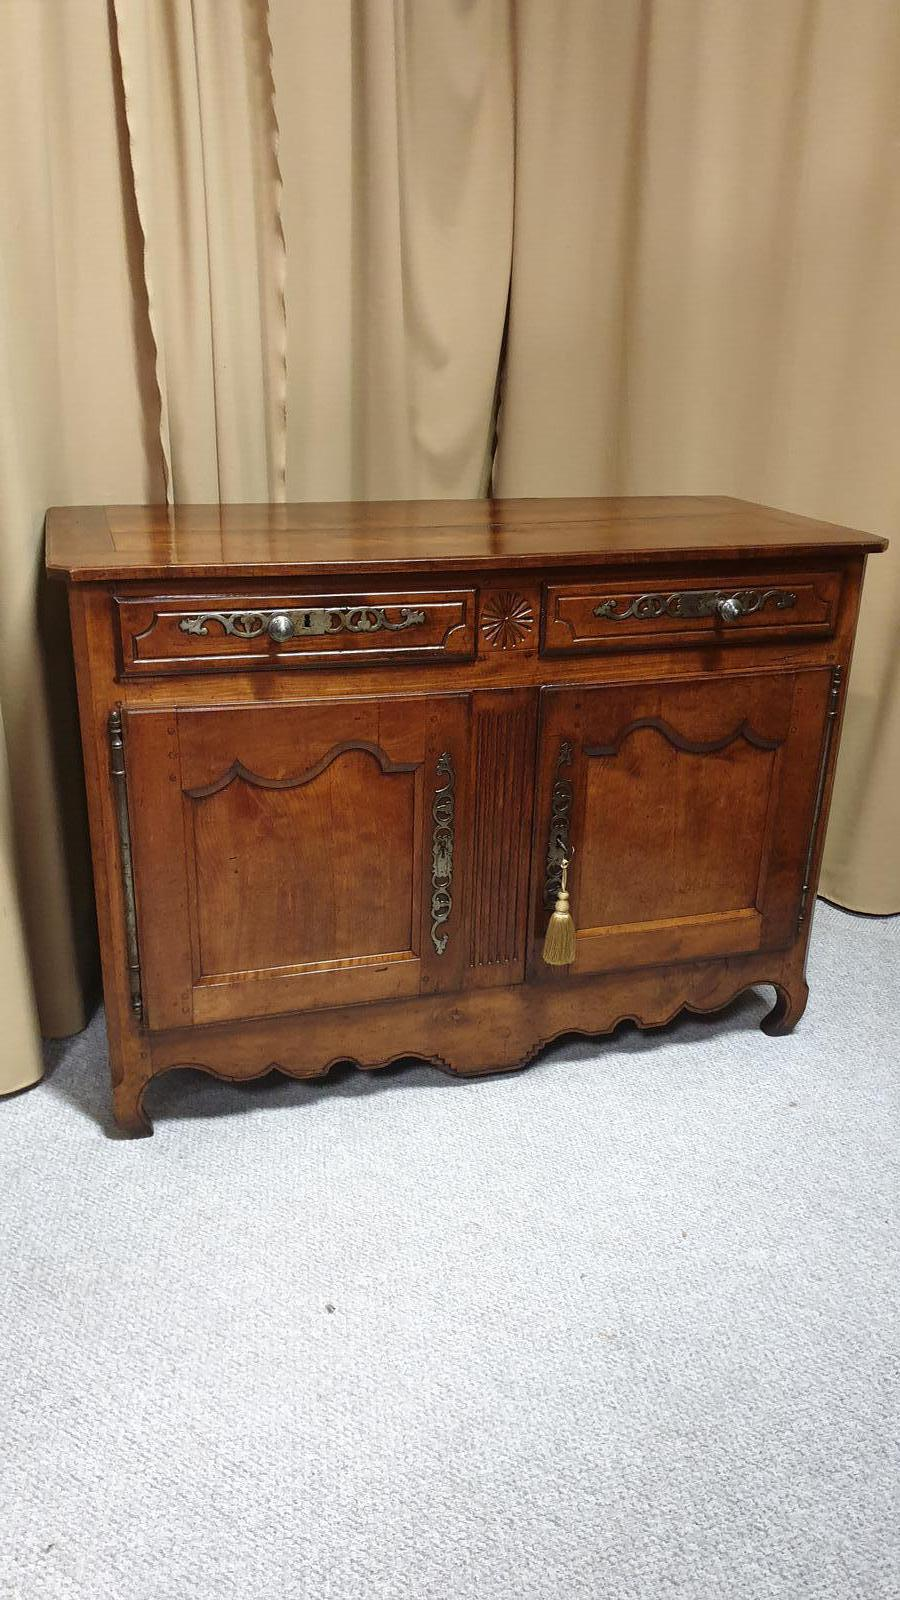 Superb French Cherry Wood Sideboard Buffet (1 of 1)